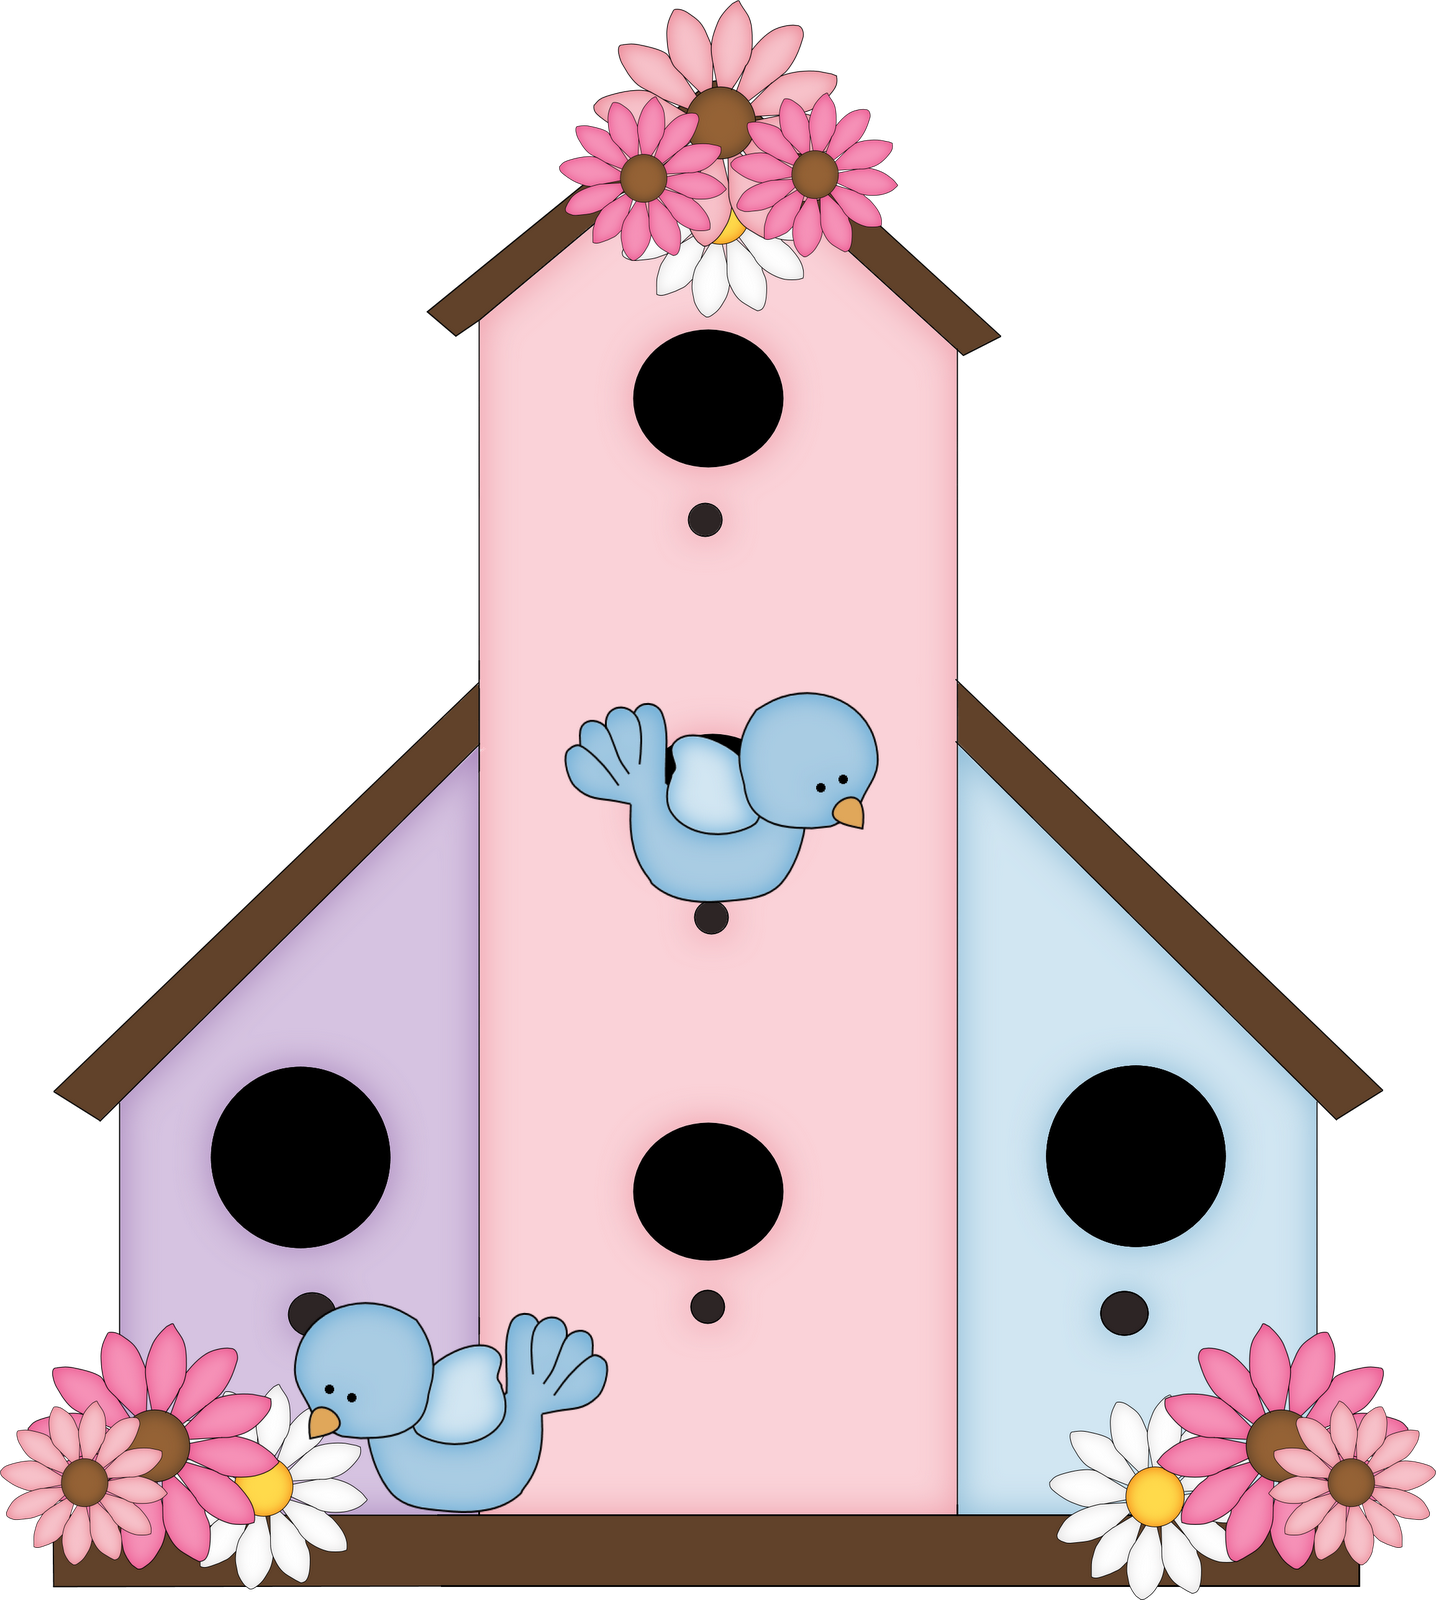 Cute birdhouse clipart free images 5